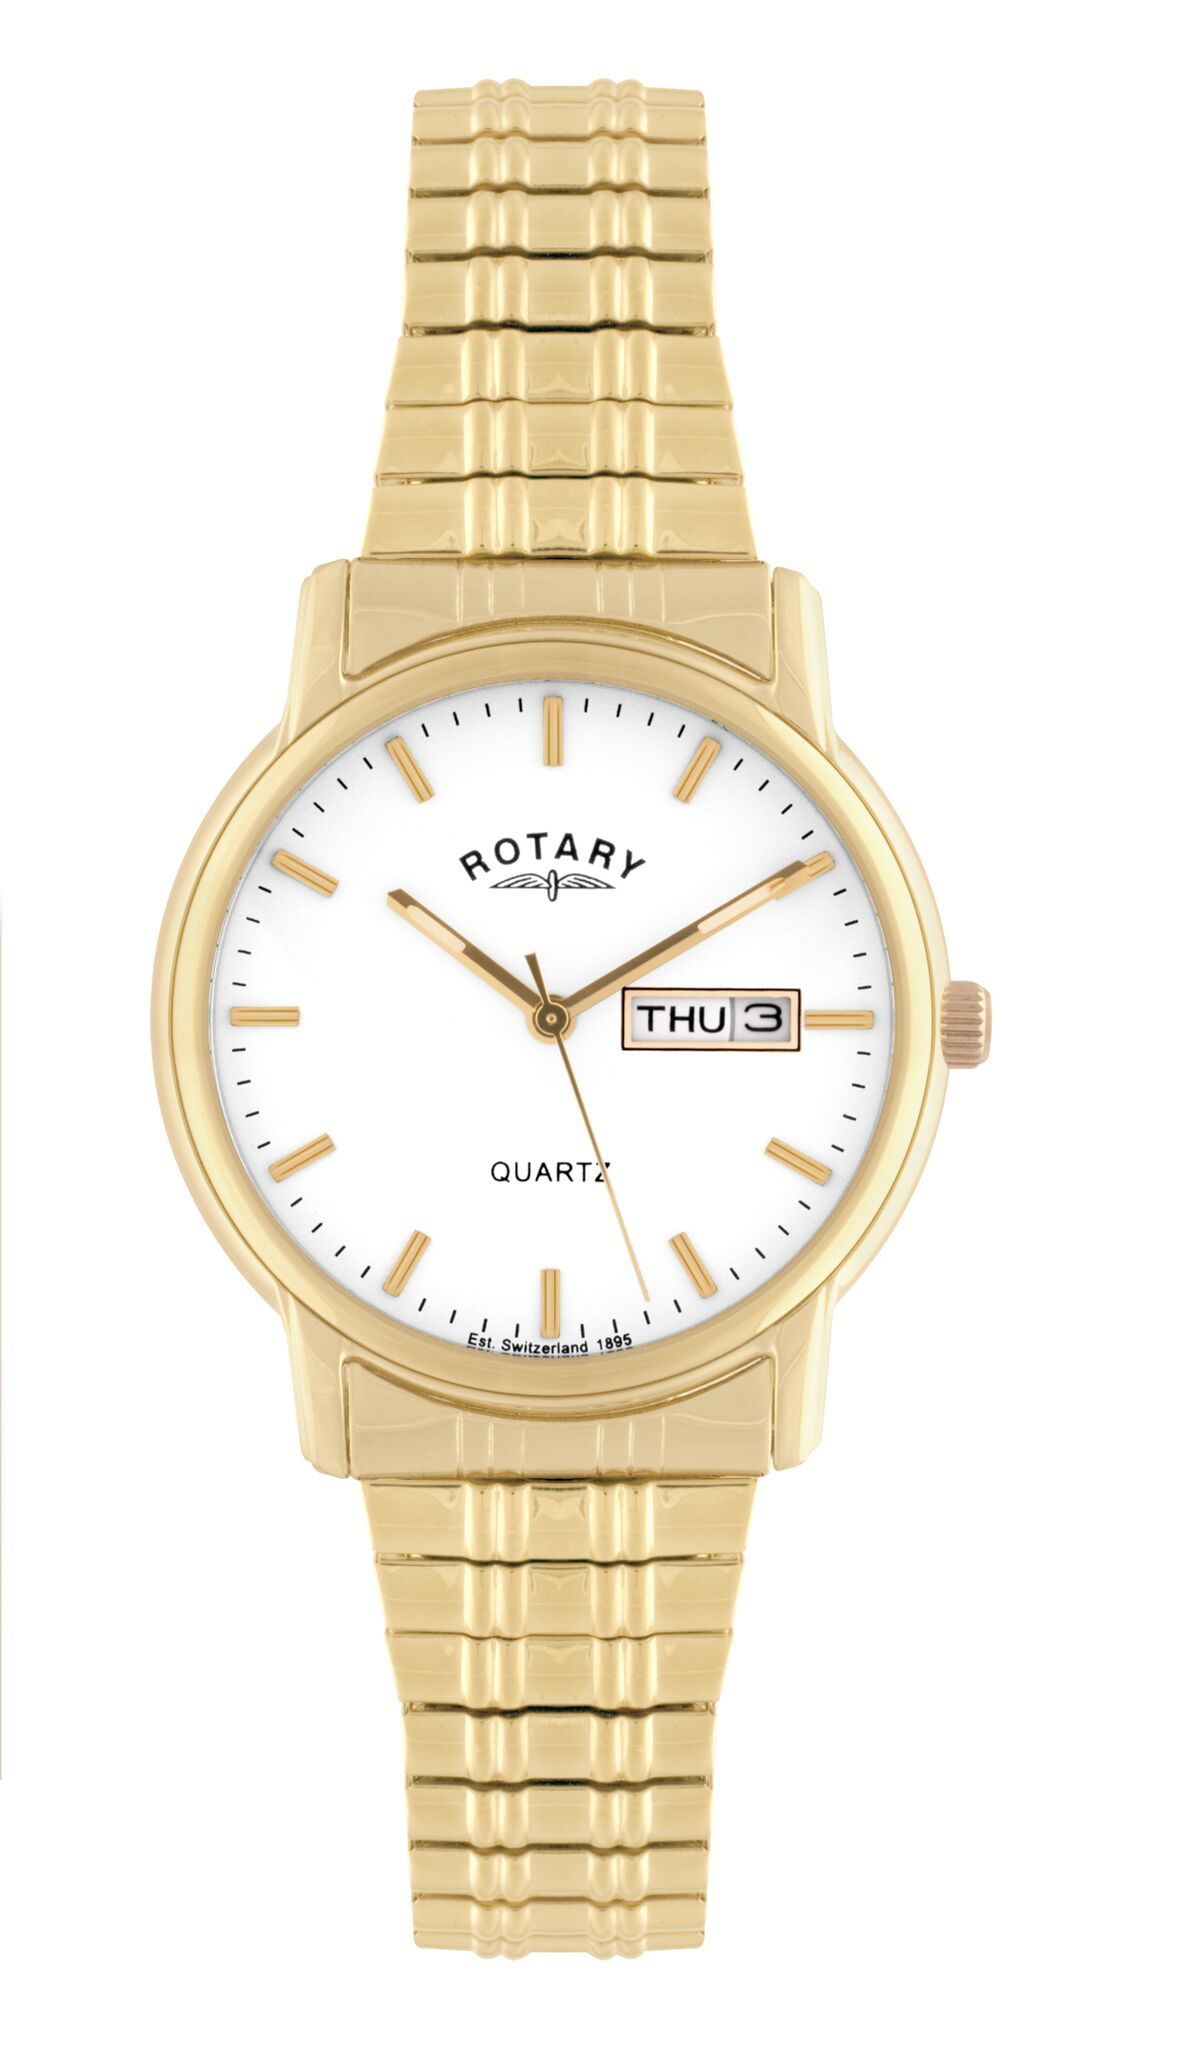 7900987d65f Home   Watches   Mens   Rotary · GB102764 08 Men s Rotary Gold Plated  Stainless Steel Expanding Bracelet Watch .